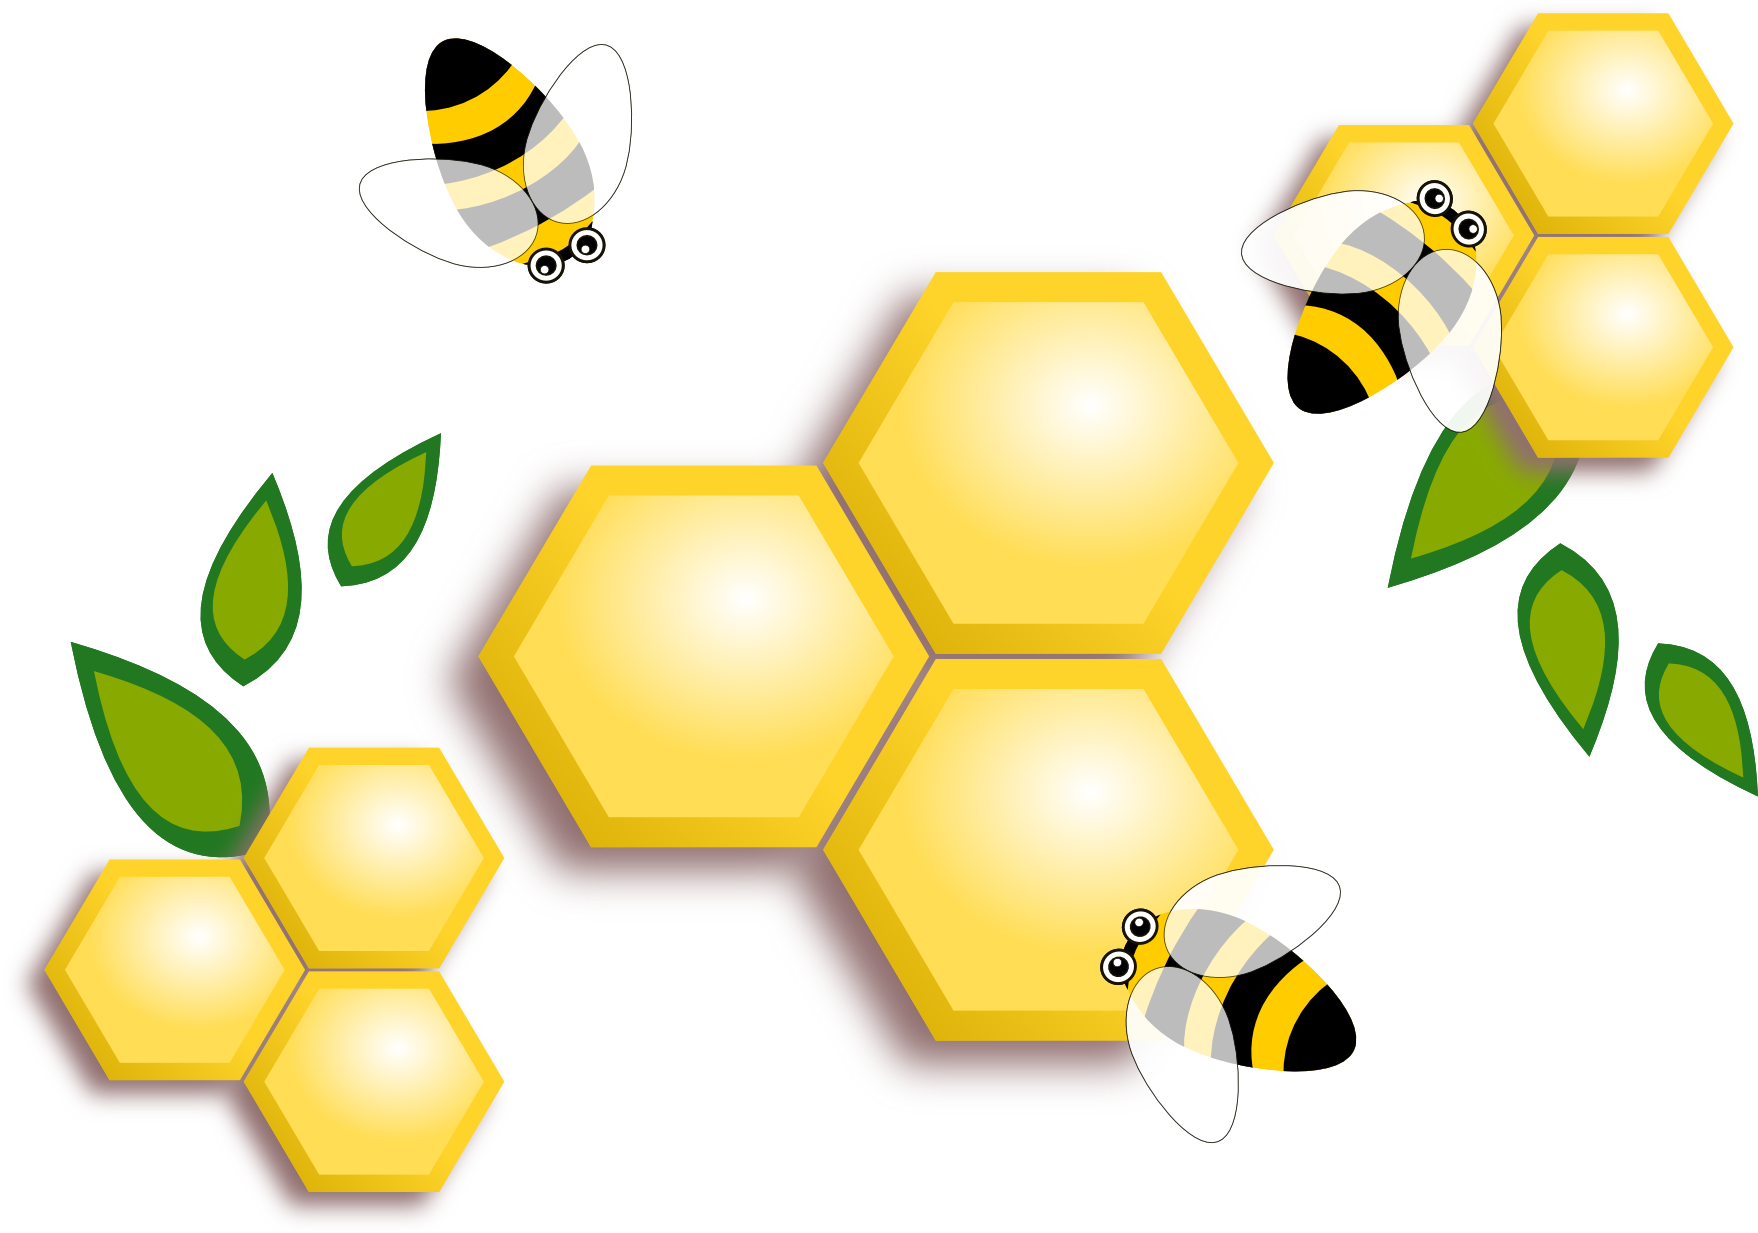 Cute honey bee png. Logos bees and x